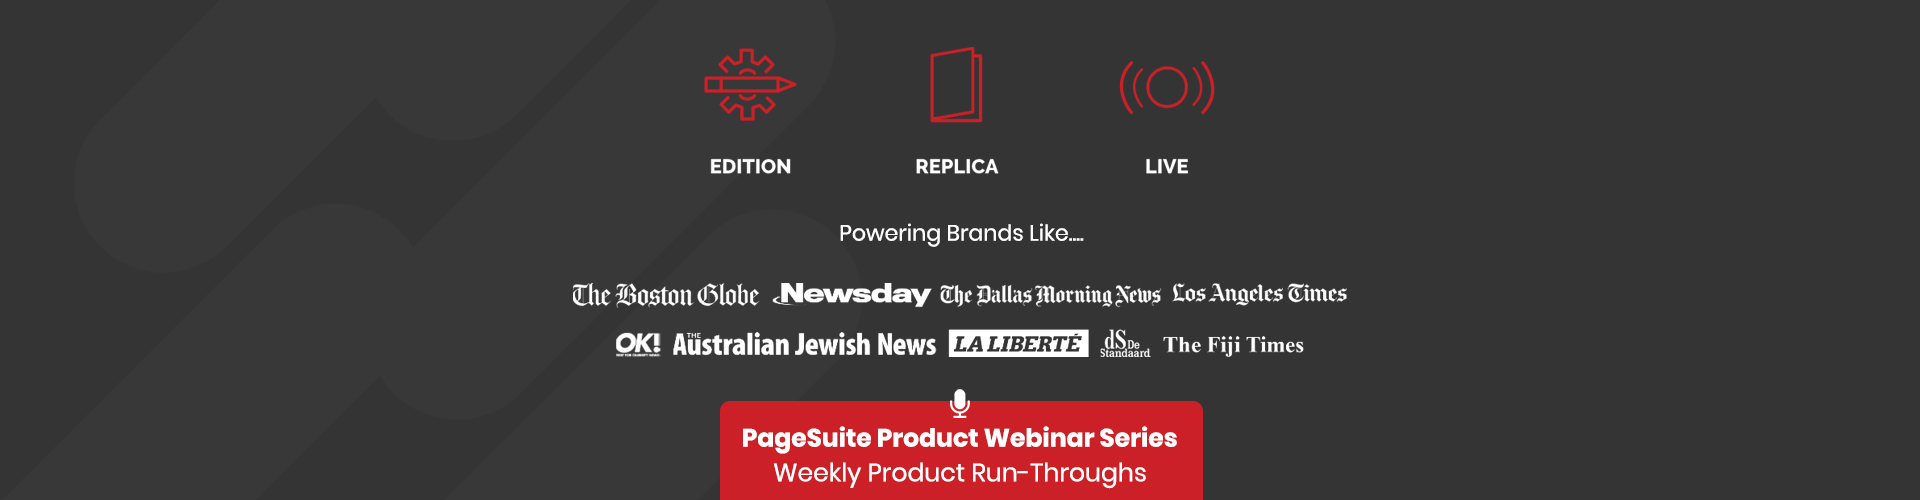 Image of Product Webinar Series